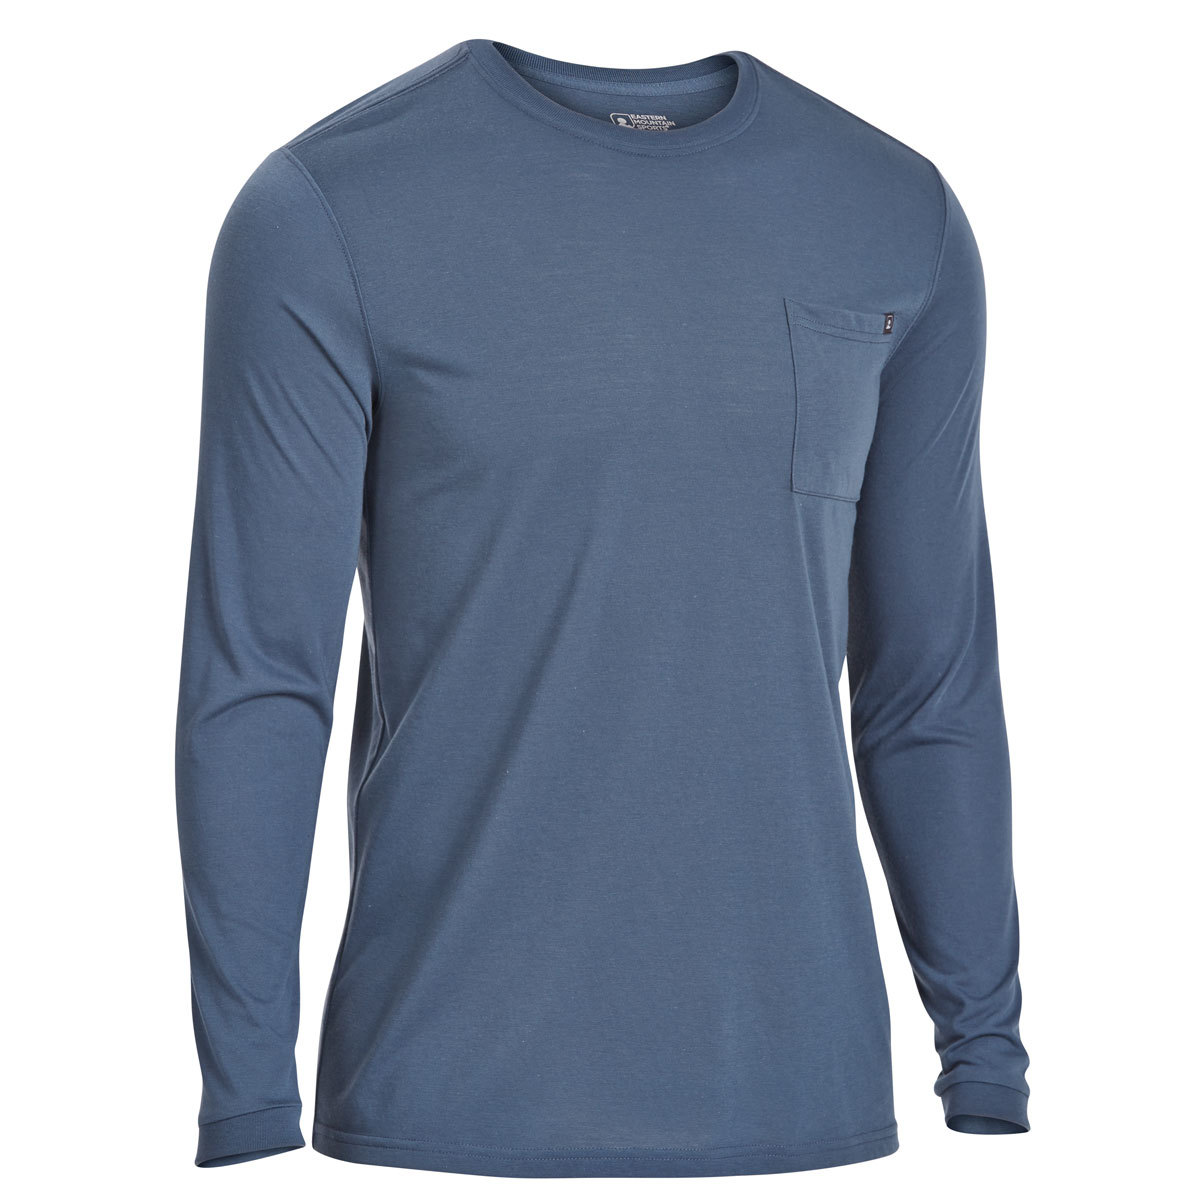 Ems Men's Techwick Vital Pocket Long-Sleeve Tee - Blue, XL